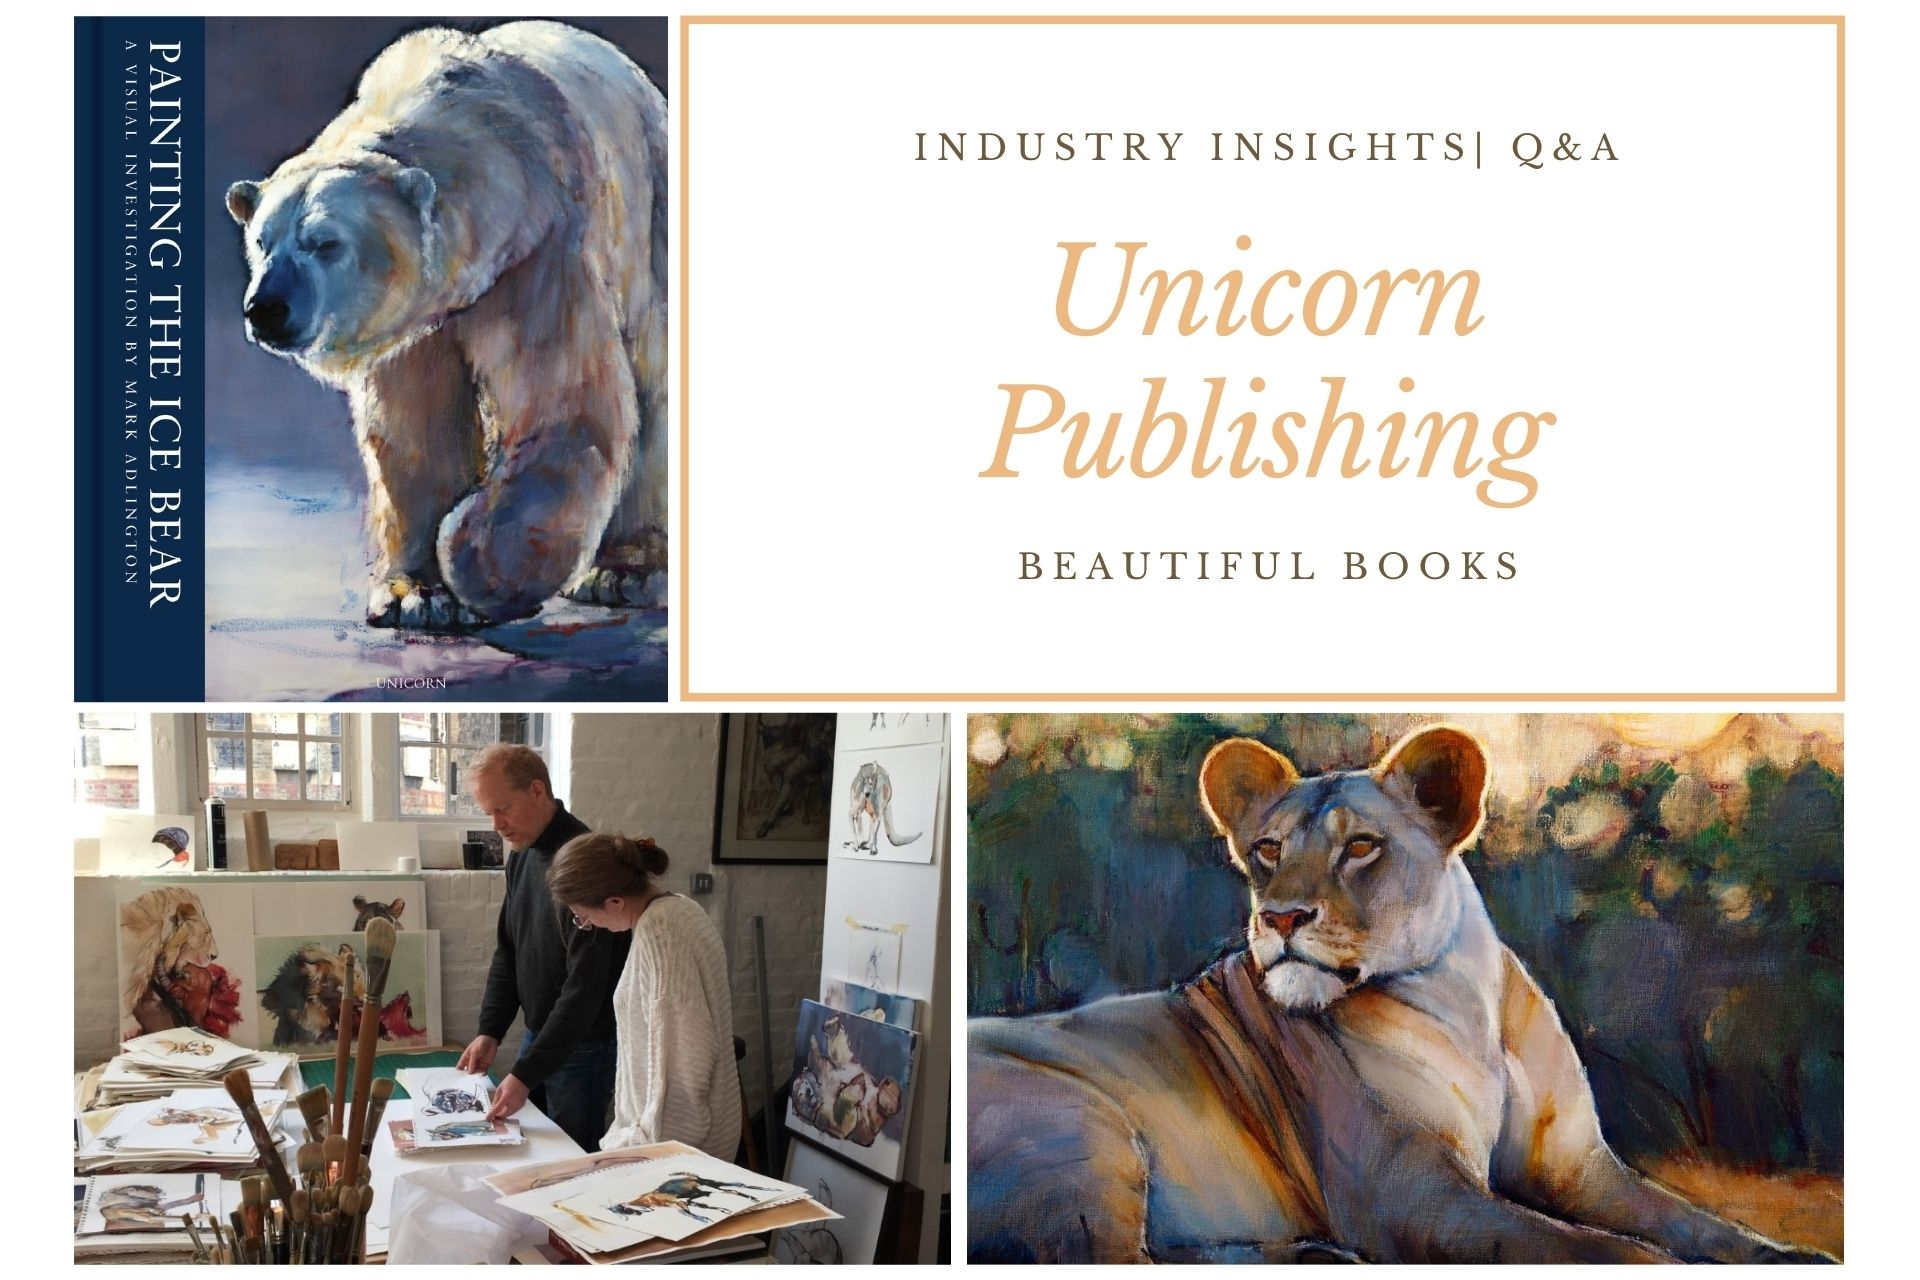 Industry Insight: Q&A with Unicorn Publishing (Beautiful Books)